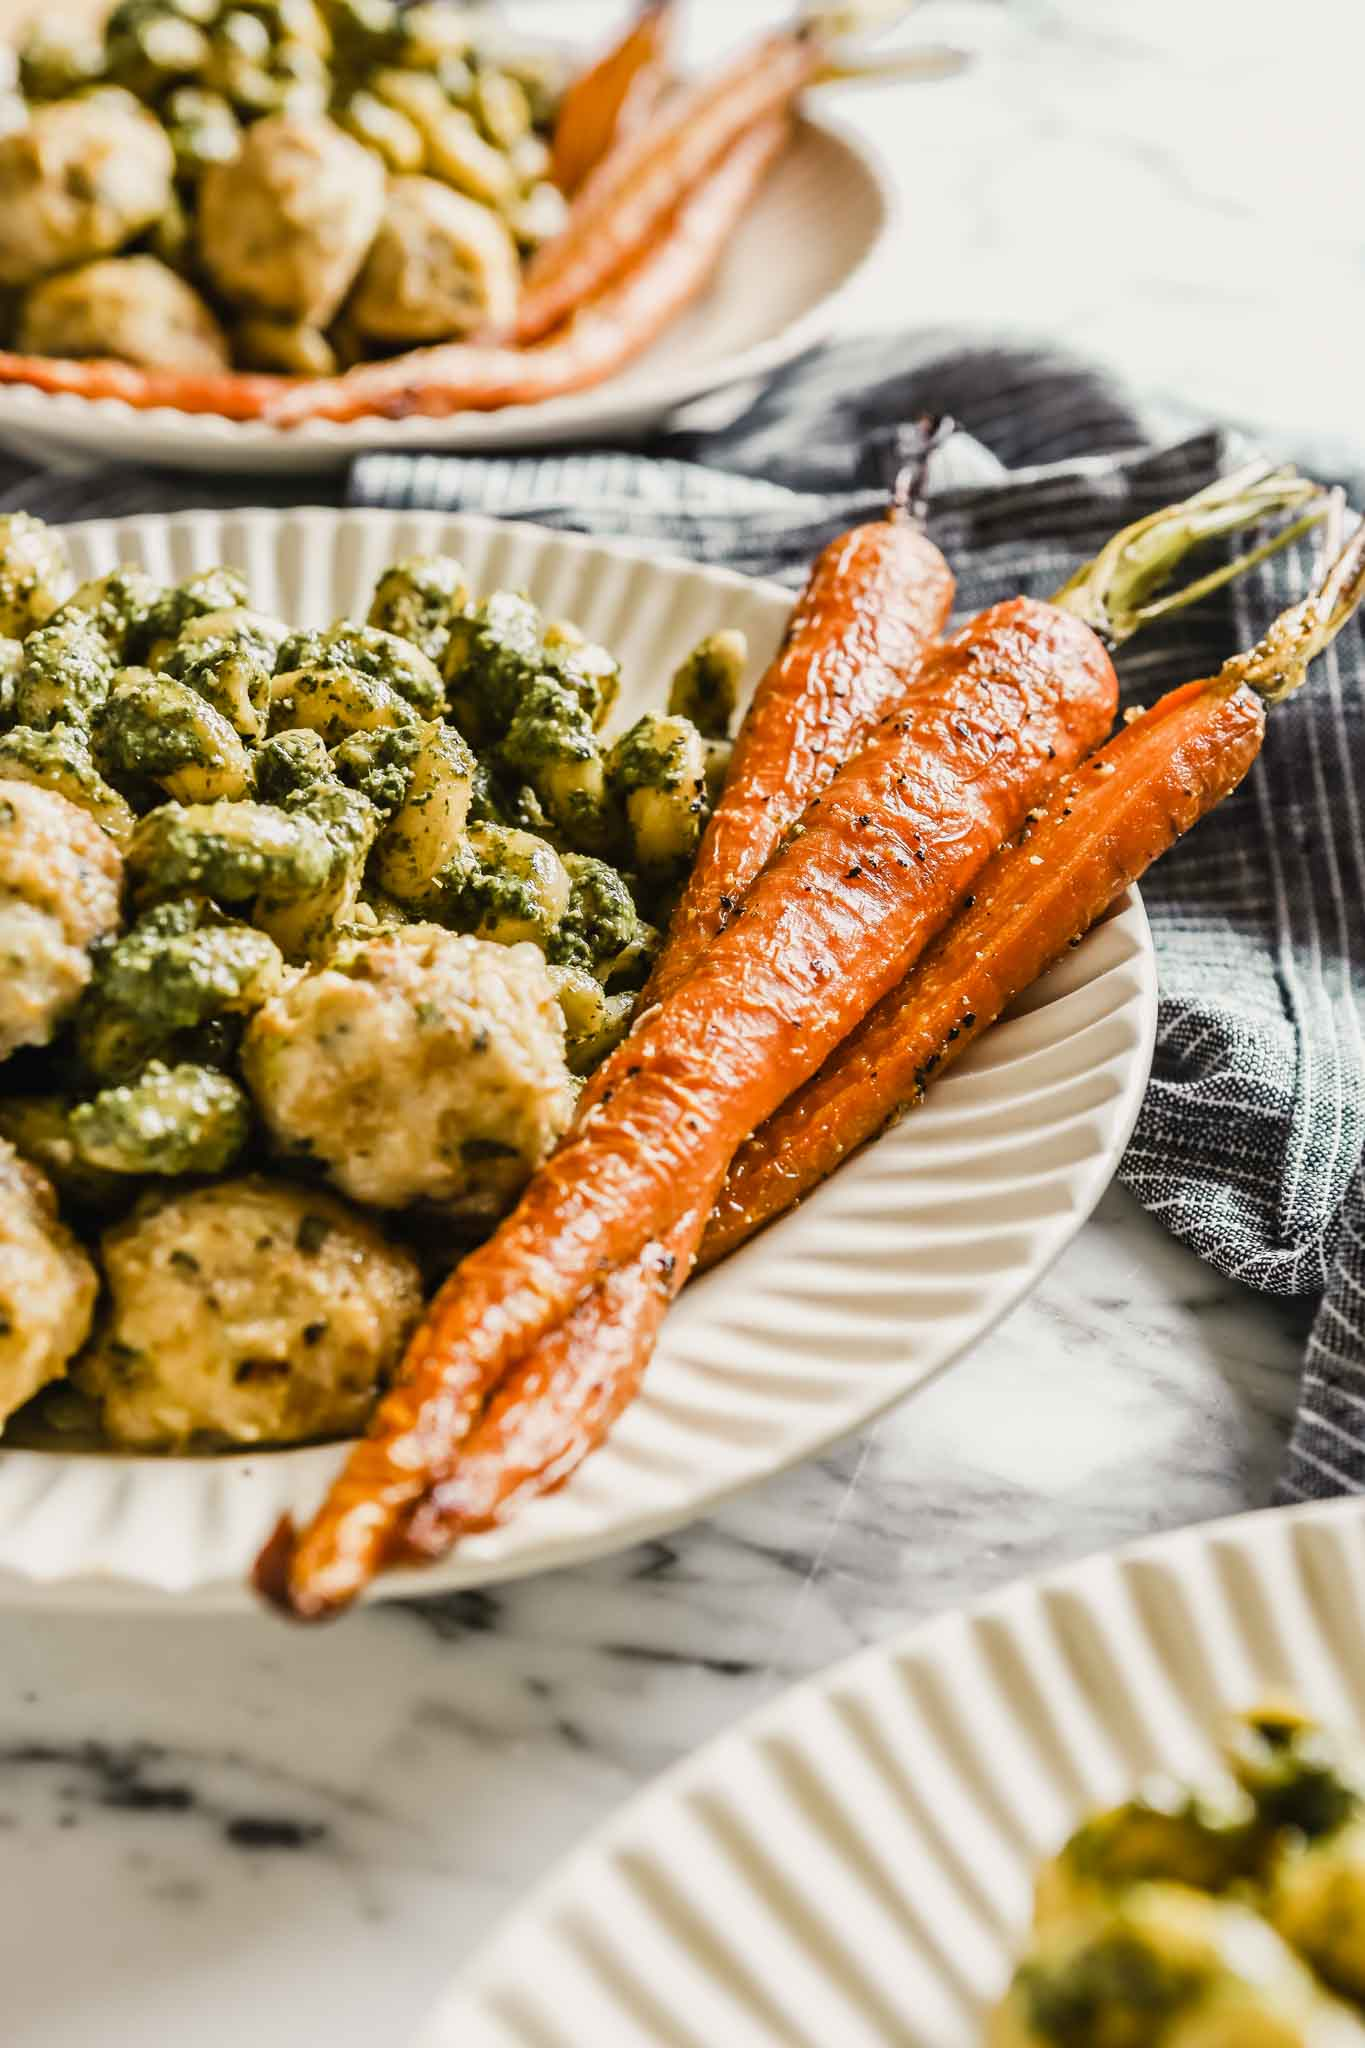 Photograph of chicken meatballs in a white bowl with pesto pasta and roasted carrots